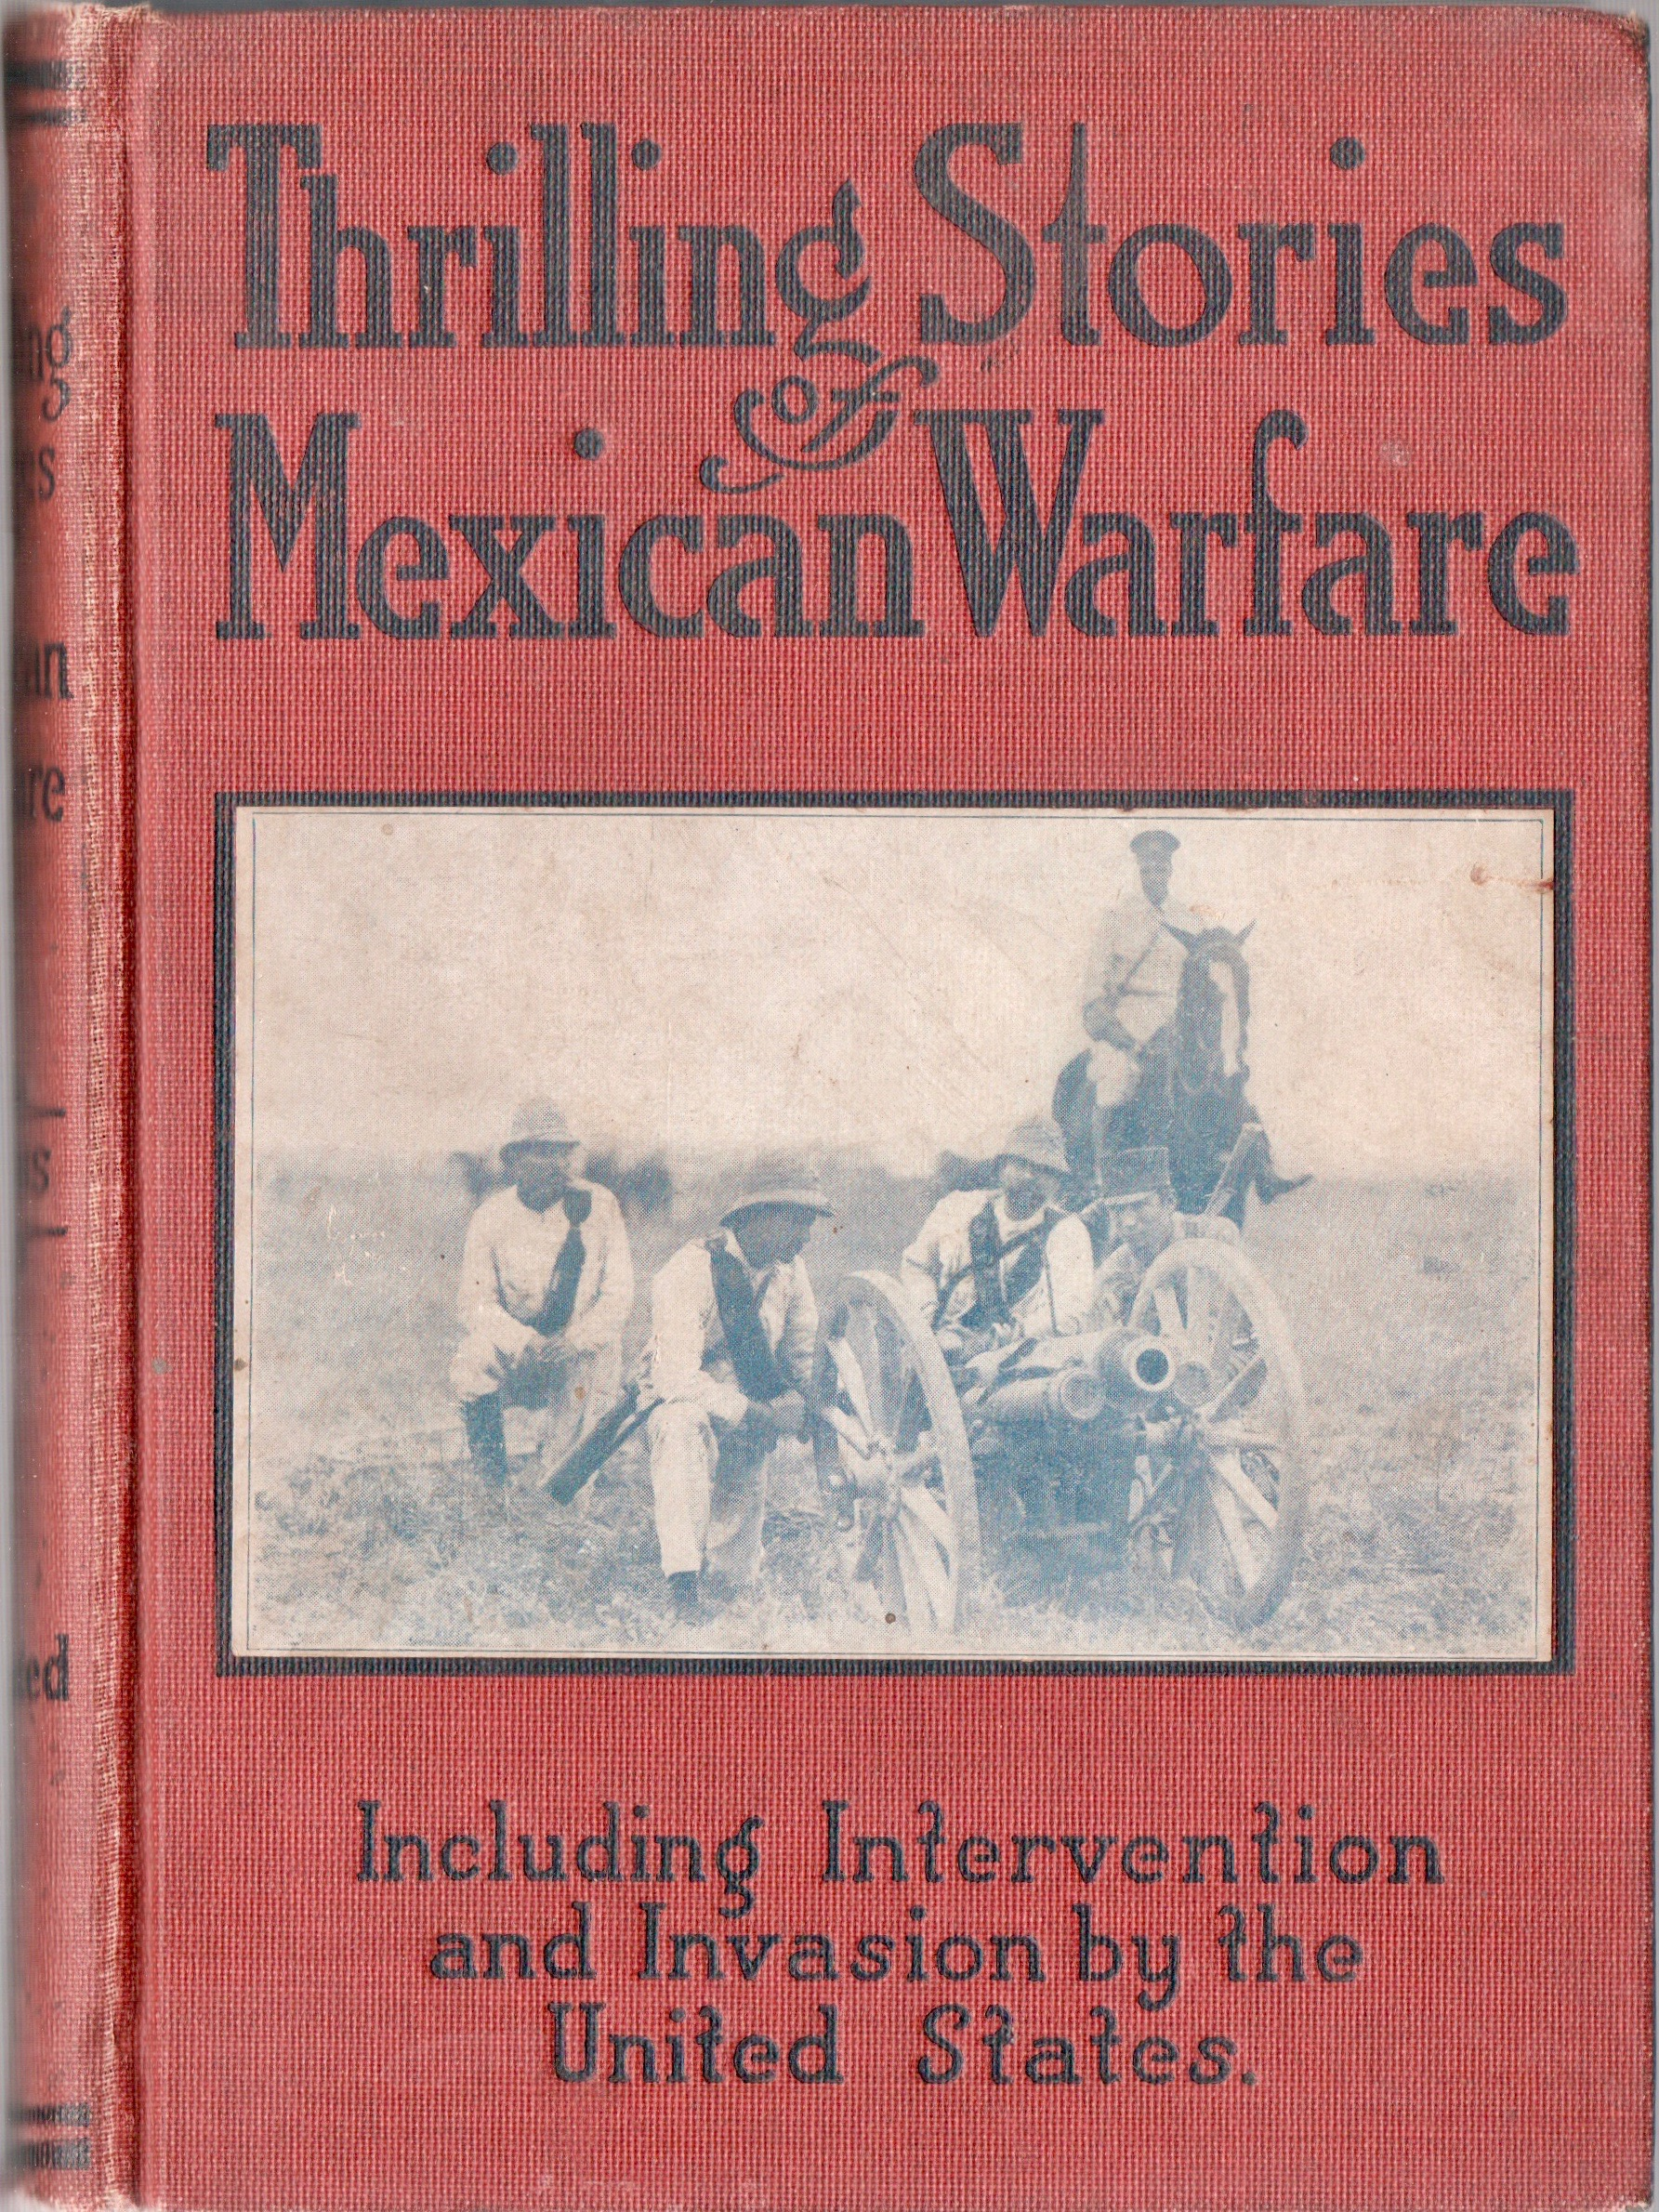 Thrilling Stories of Mexican Warfare Cover.jpeg